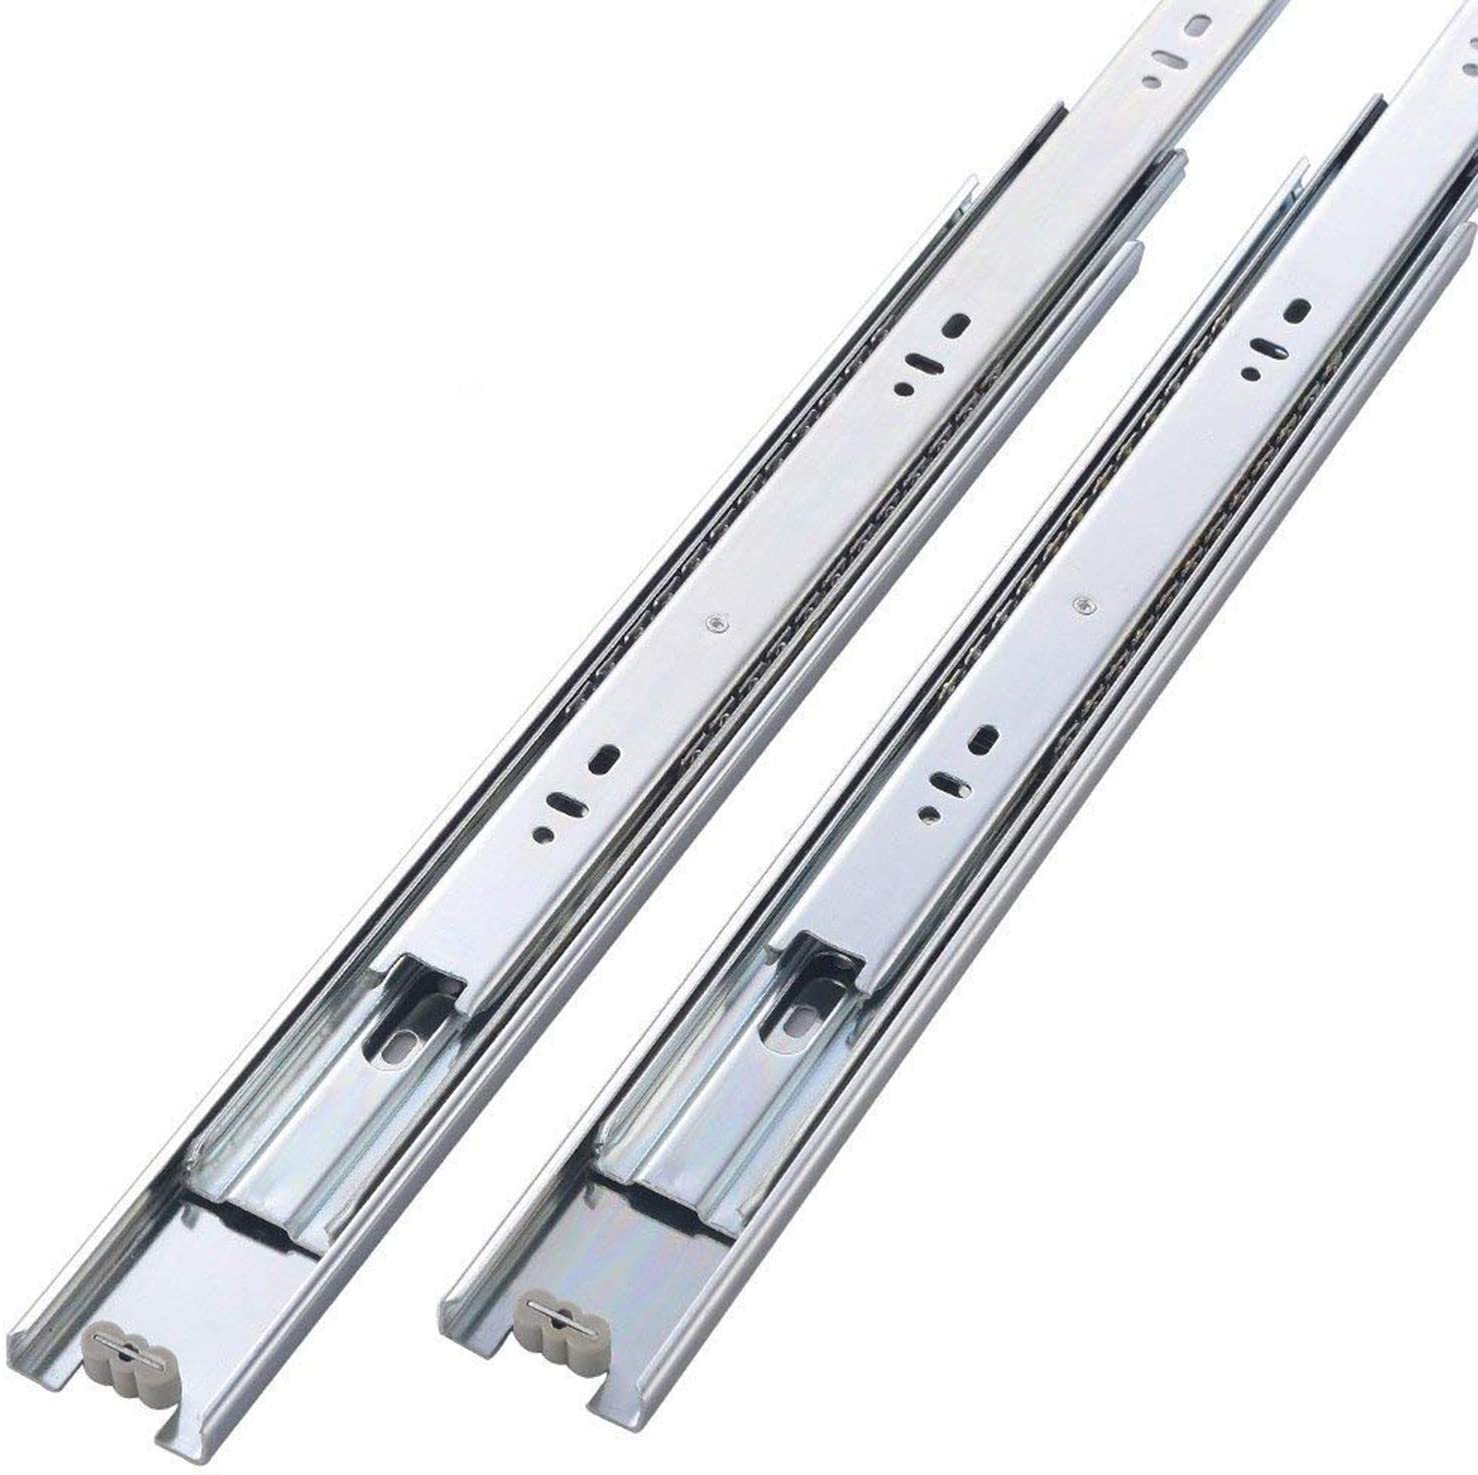 How to Choose Best Drawer Slides - 2020 Reviews 1